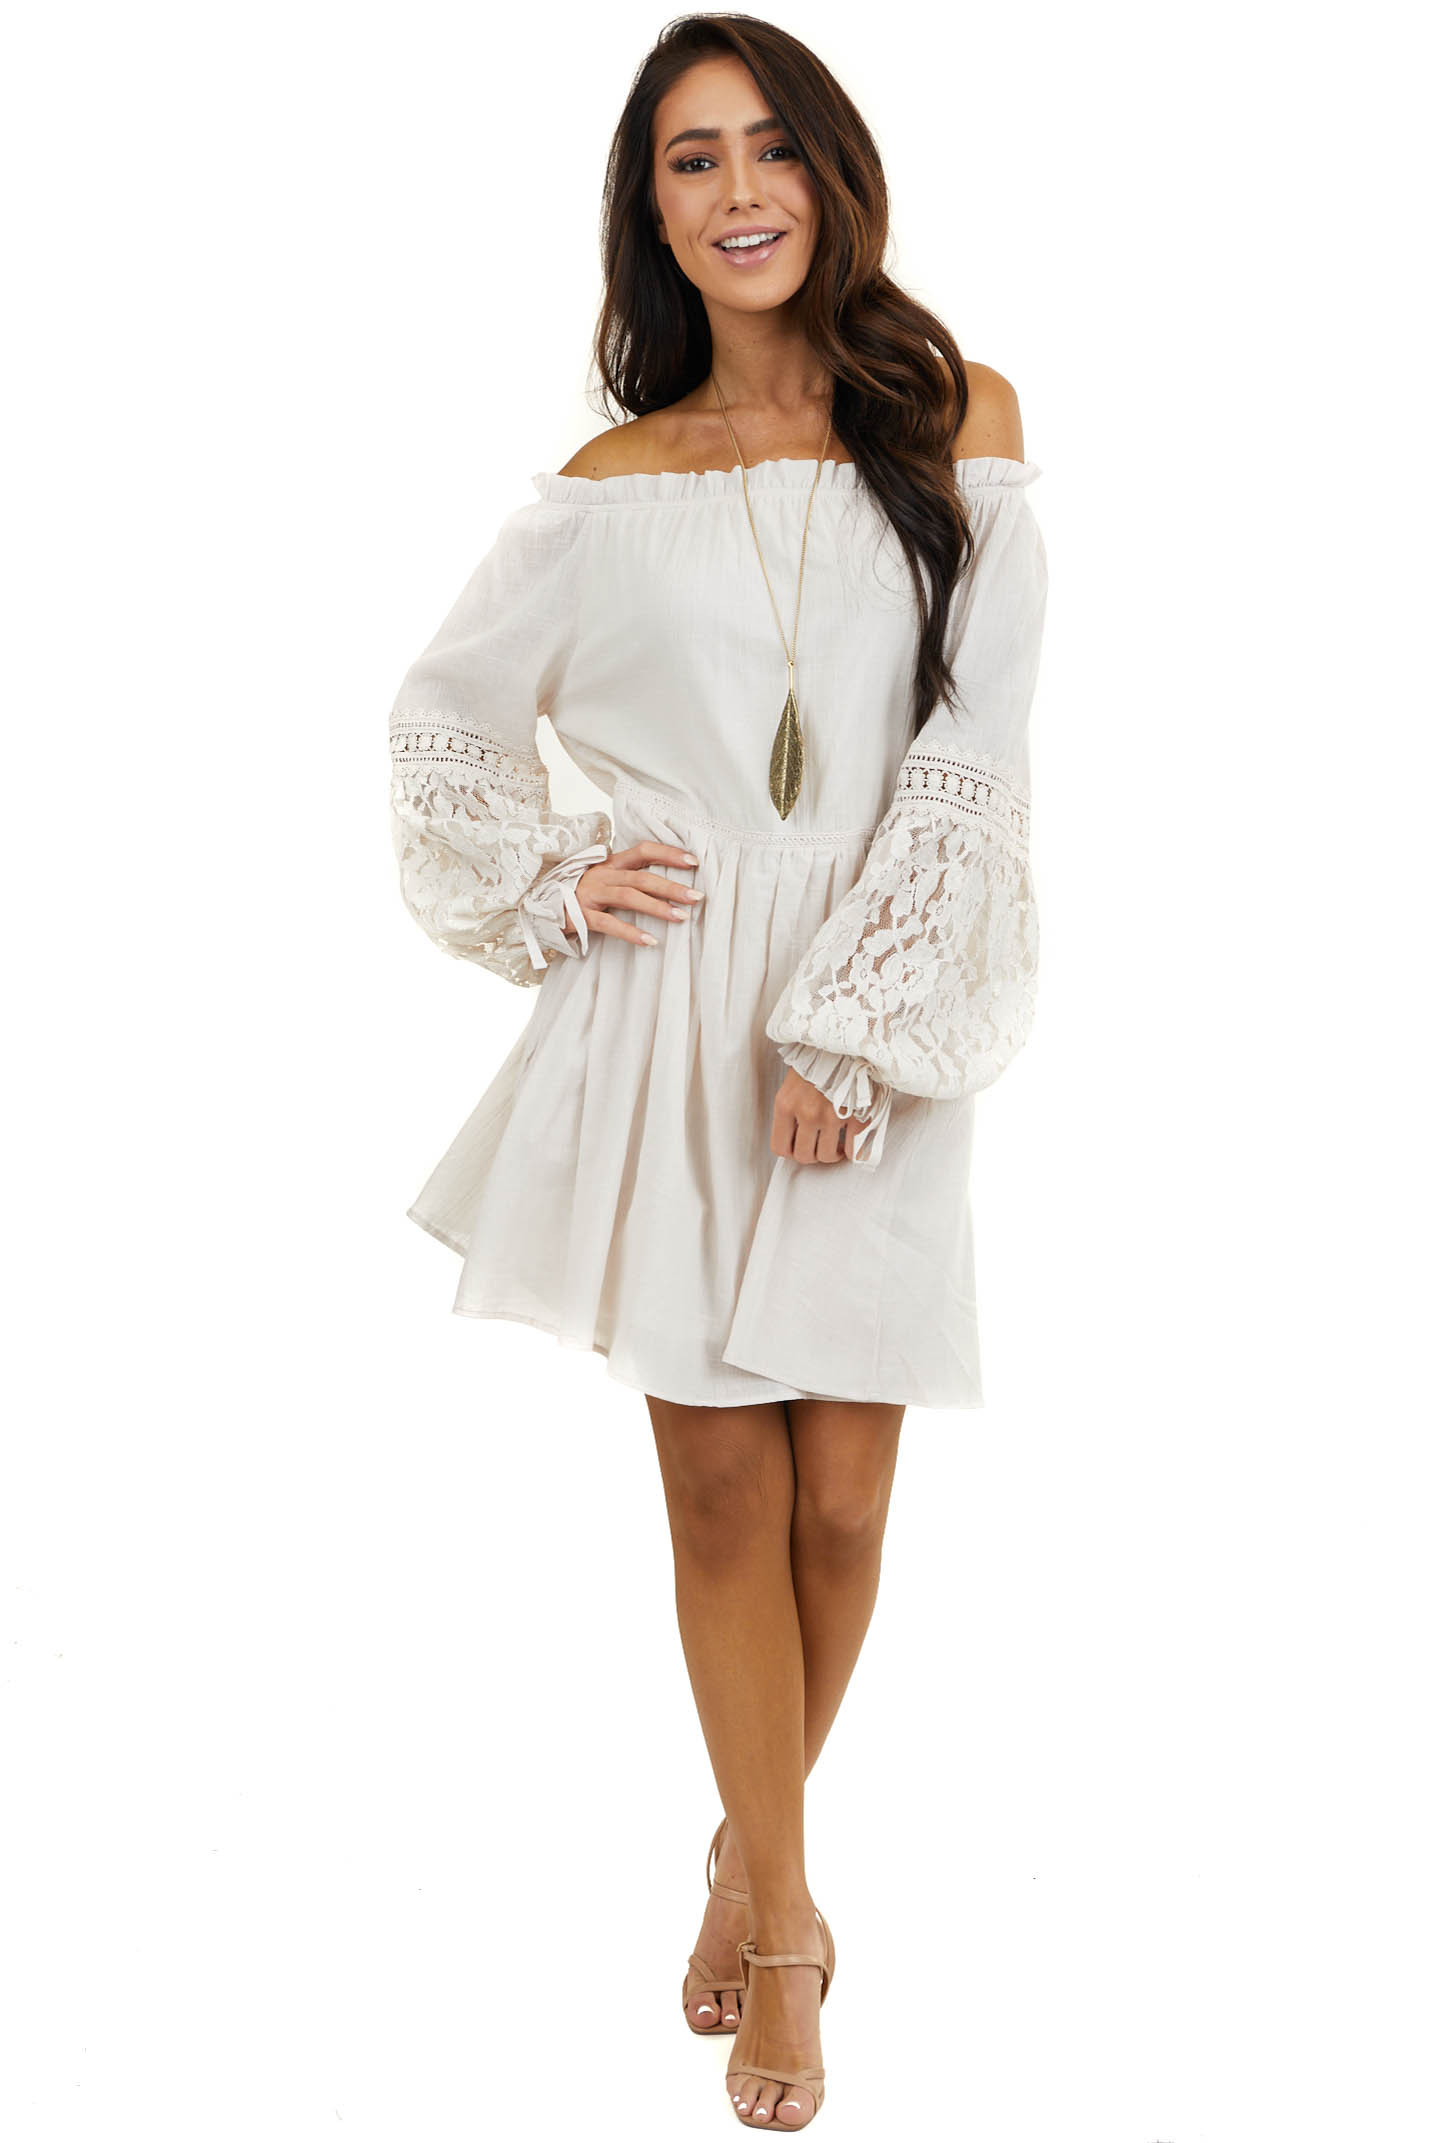 Ivory Off the Shoulder Short Dress with Lace Details